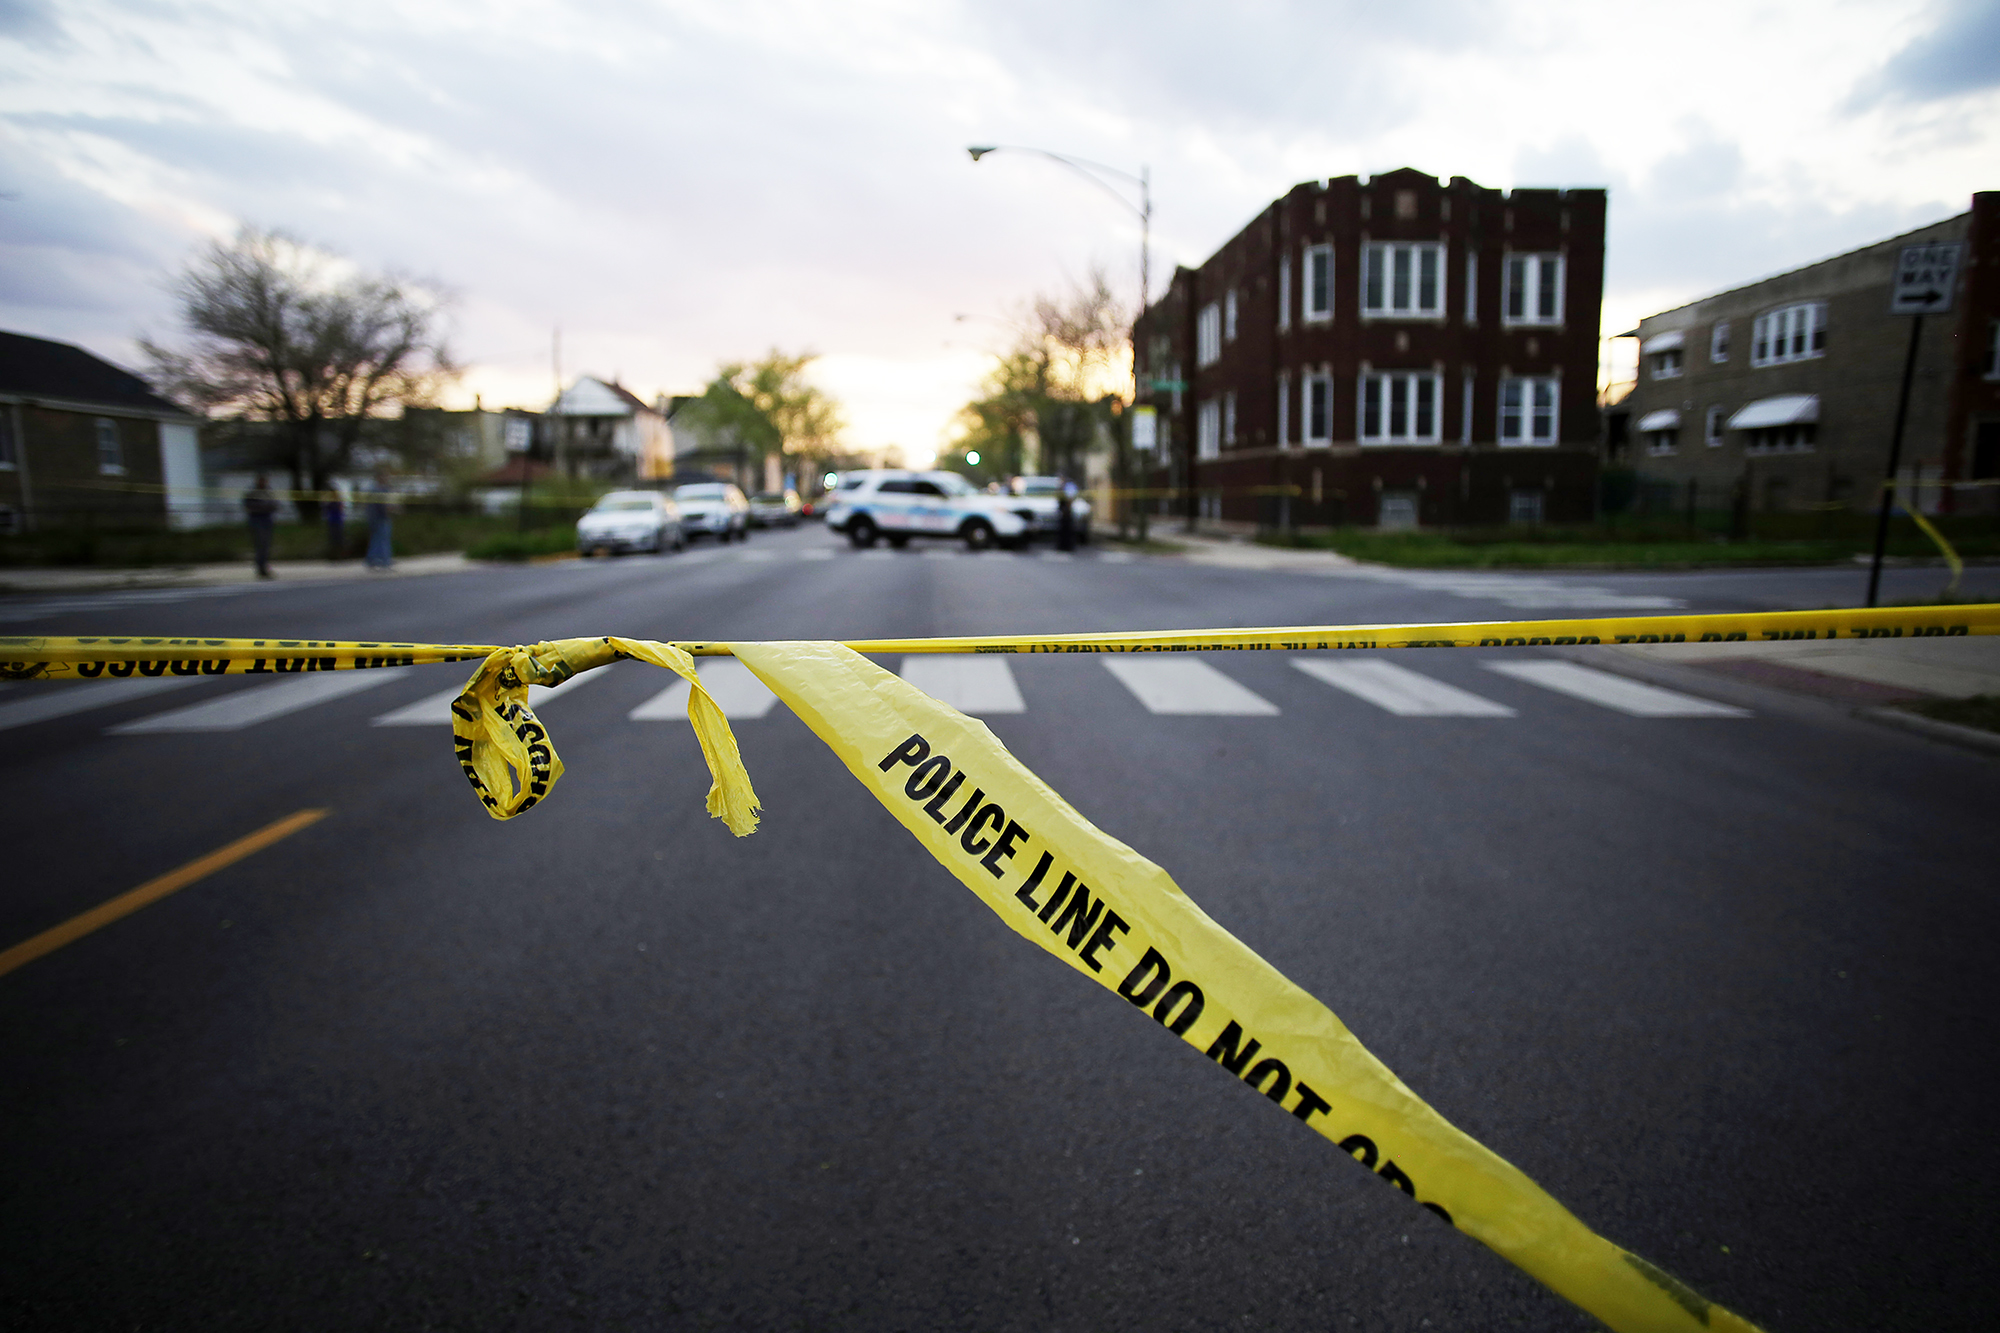 Chicago Police crime tape is displayed at the scene where a 16-year-old boy was shot in the head and killed and another 18-year-old man was shot and wounded, on April 25, 2016 in Chicago.